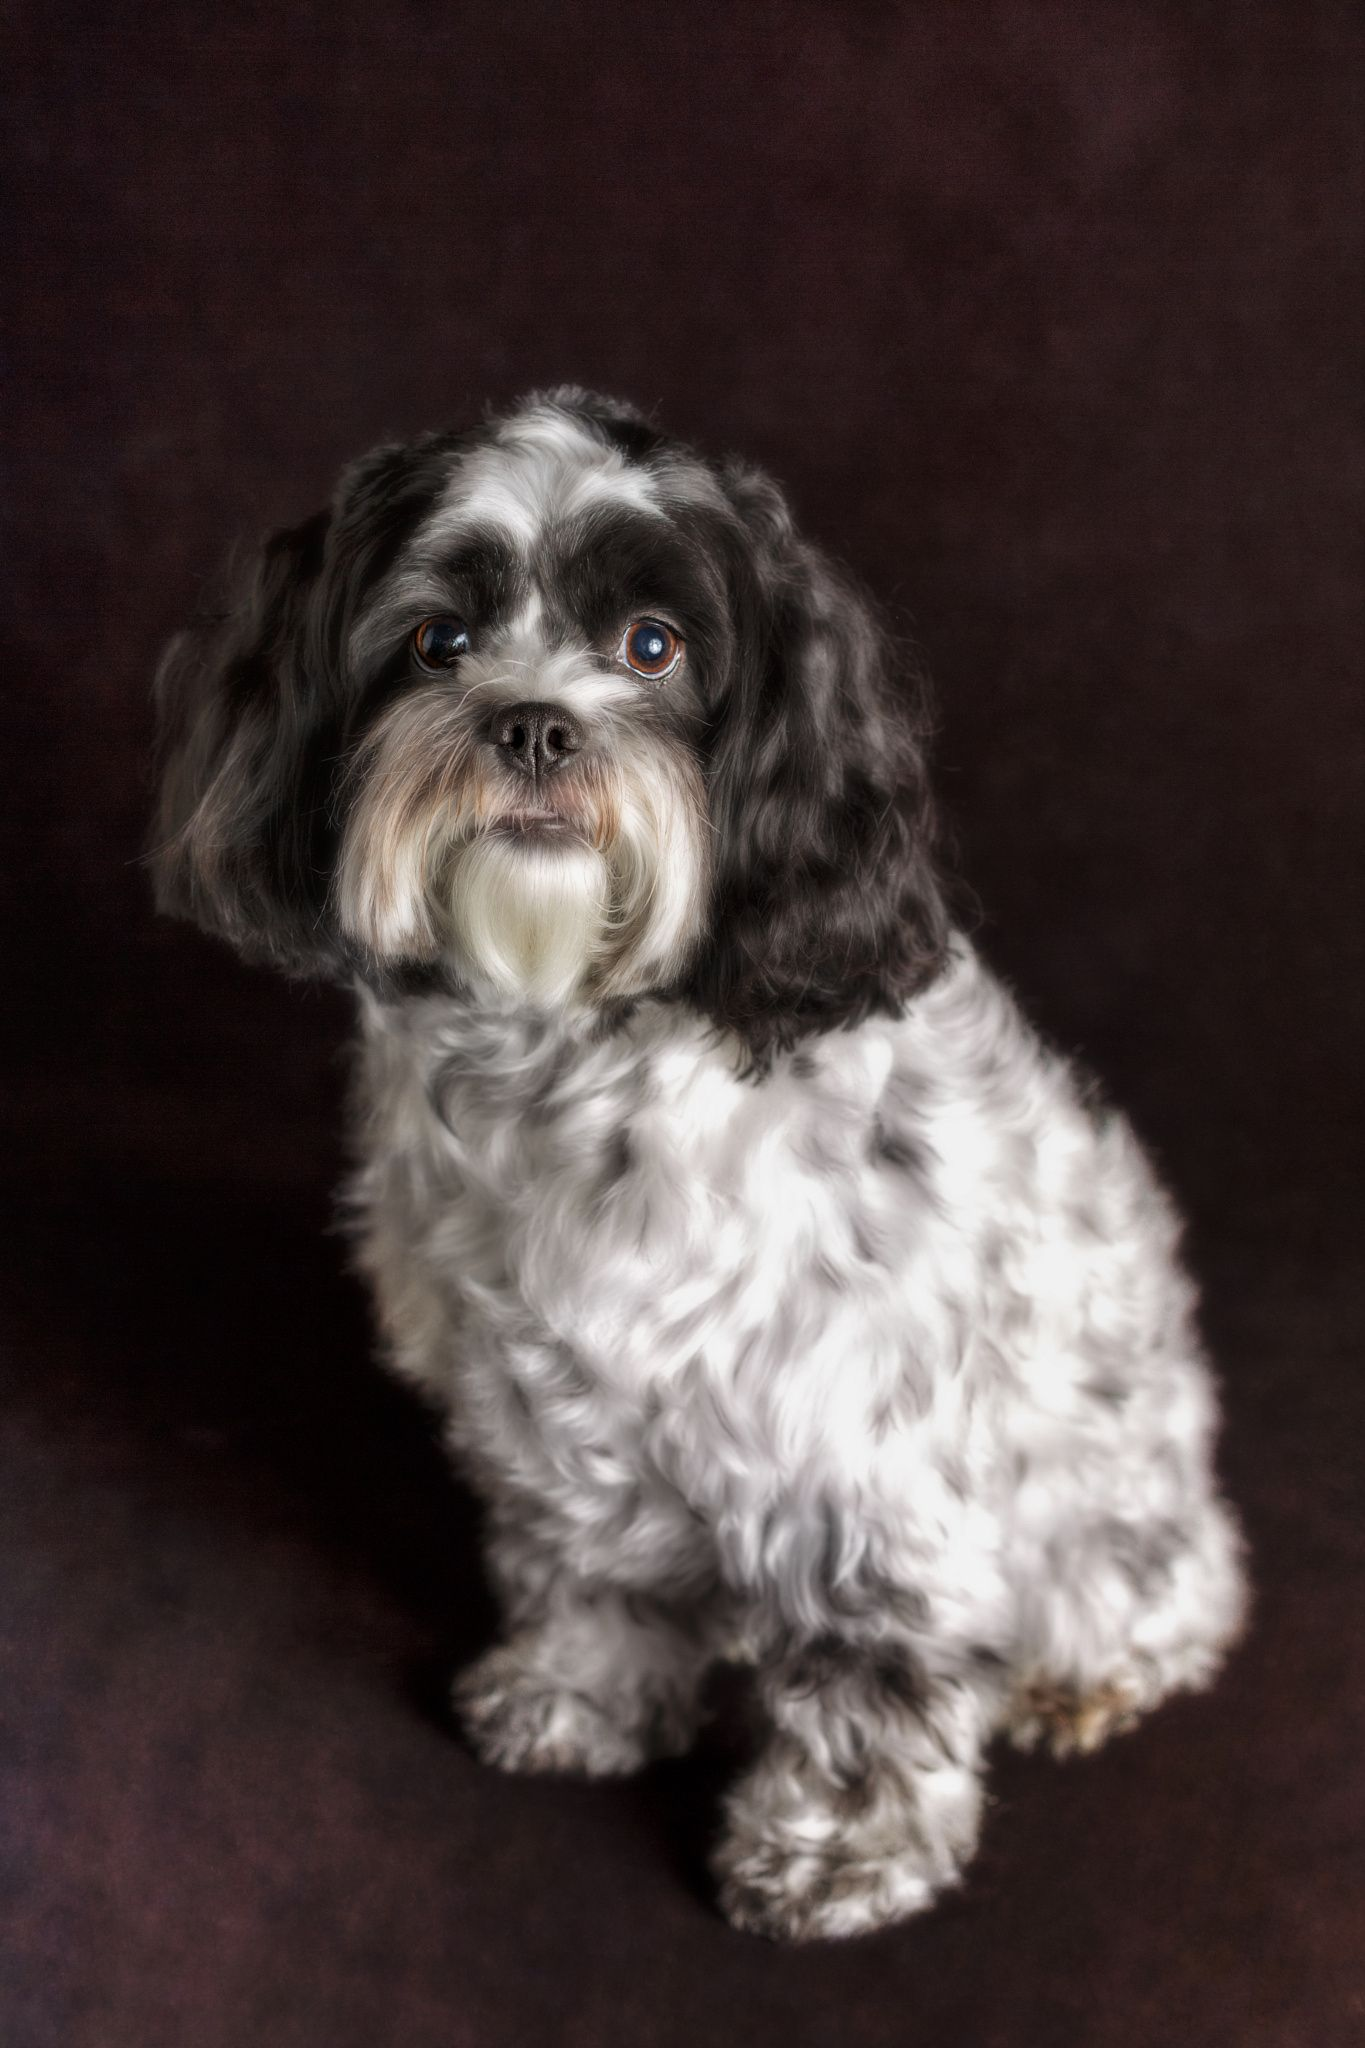 Bella Beautiful Curly Haired Black And White Designer Breed Dog Photographed In Front Of A Dark Background Dog Photograph Designer Breed Dogs